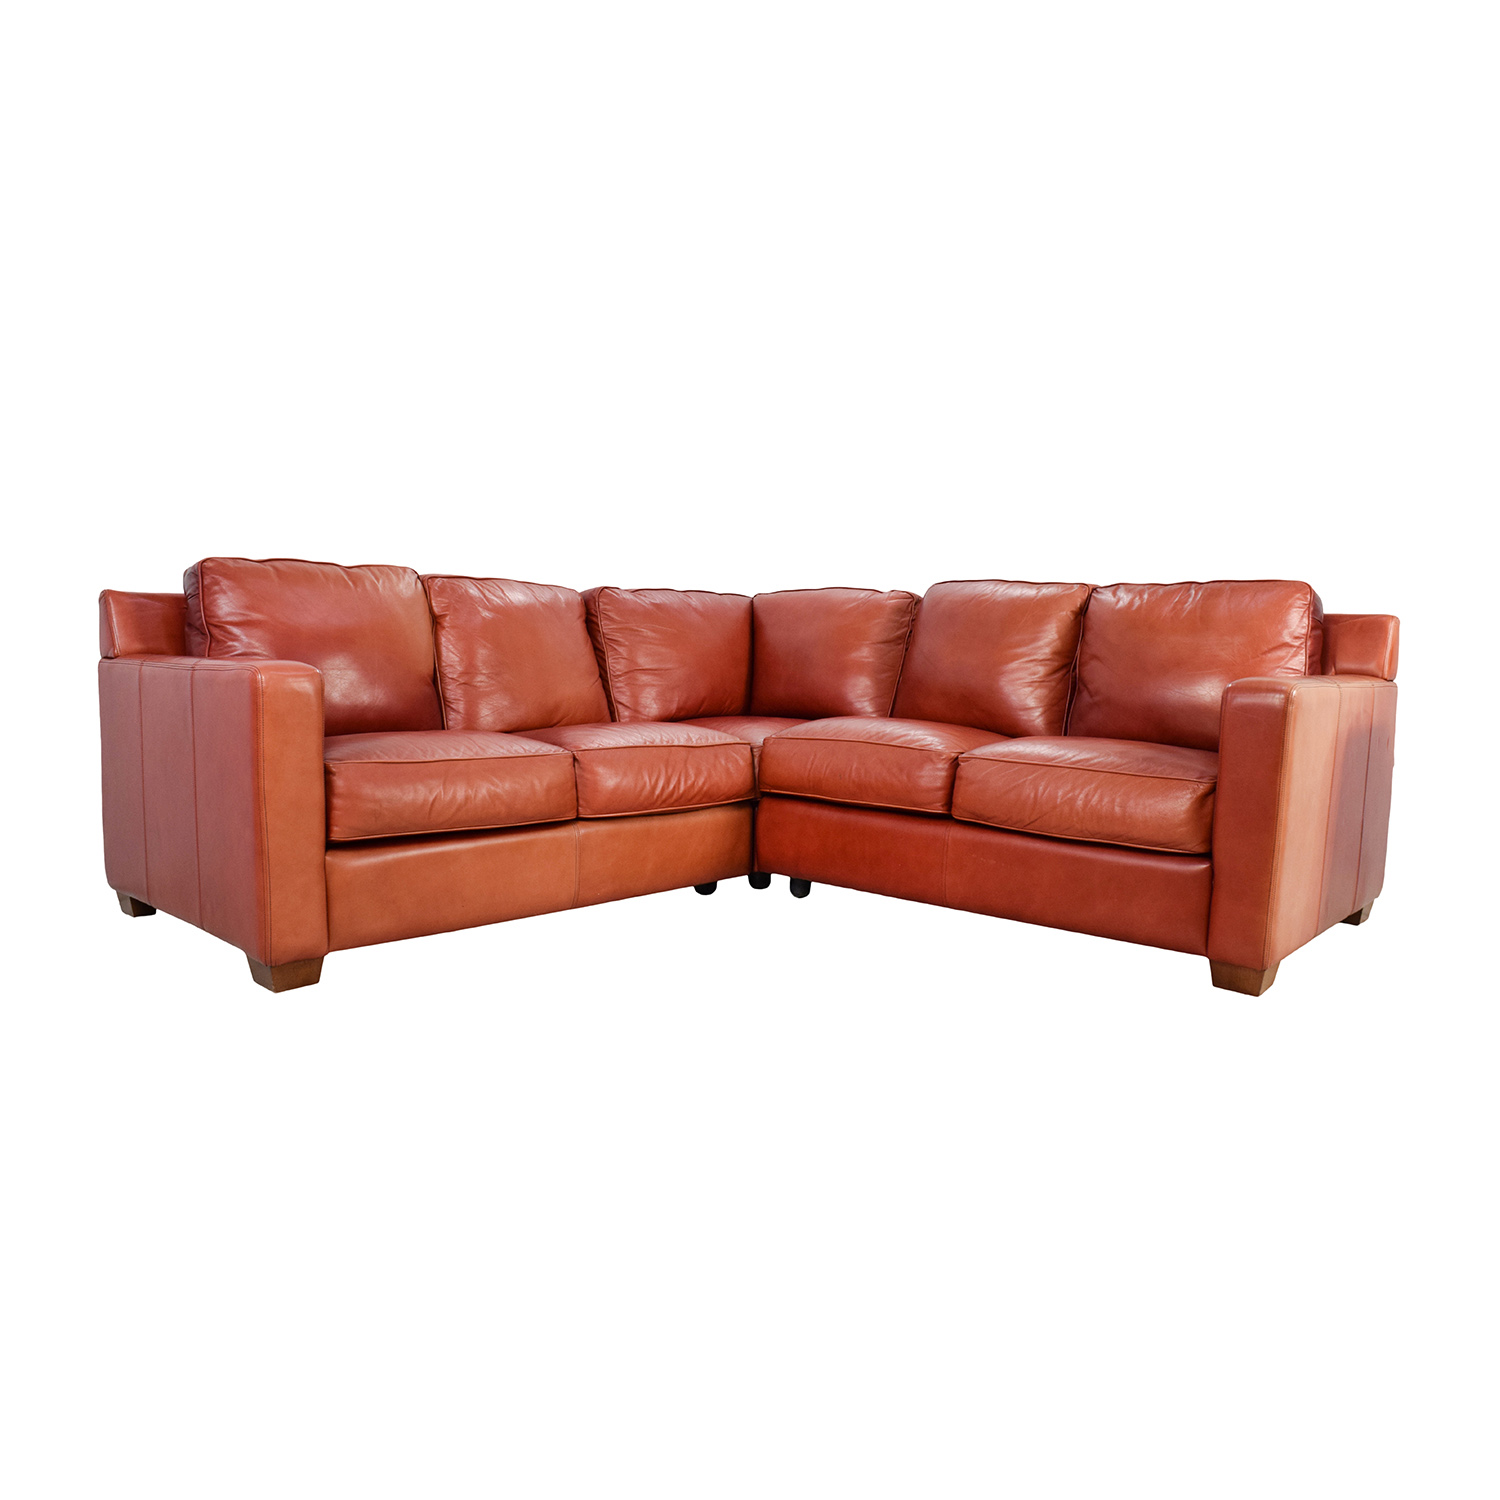 Thomasville Thomasville Red Leather Sectional used